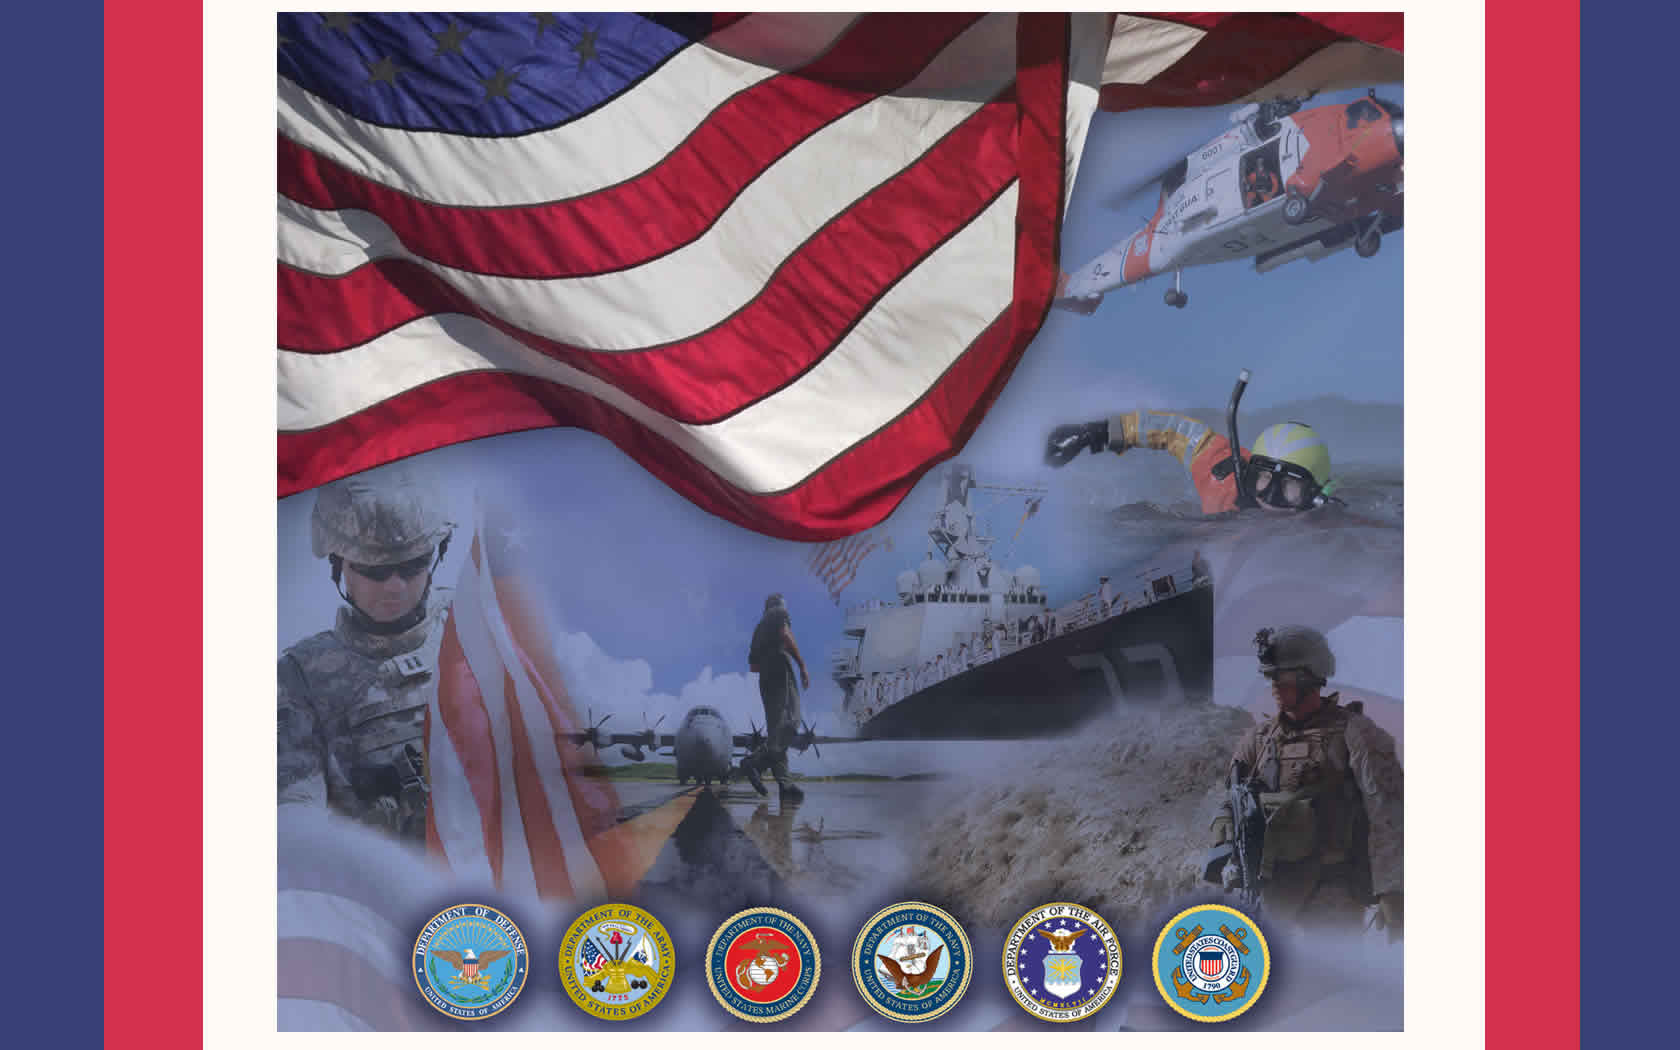 Armed_Forces_Day_2011_Widescreen_Wallpaper_US_Army_Marines_Air_Force_Navy_USA_Coast_Guard-1680x1050